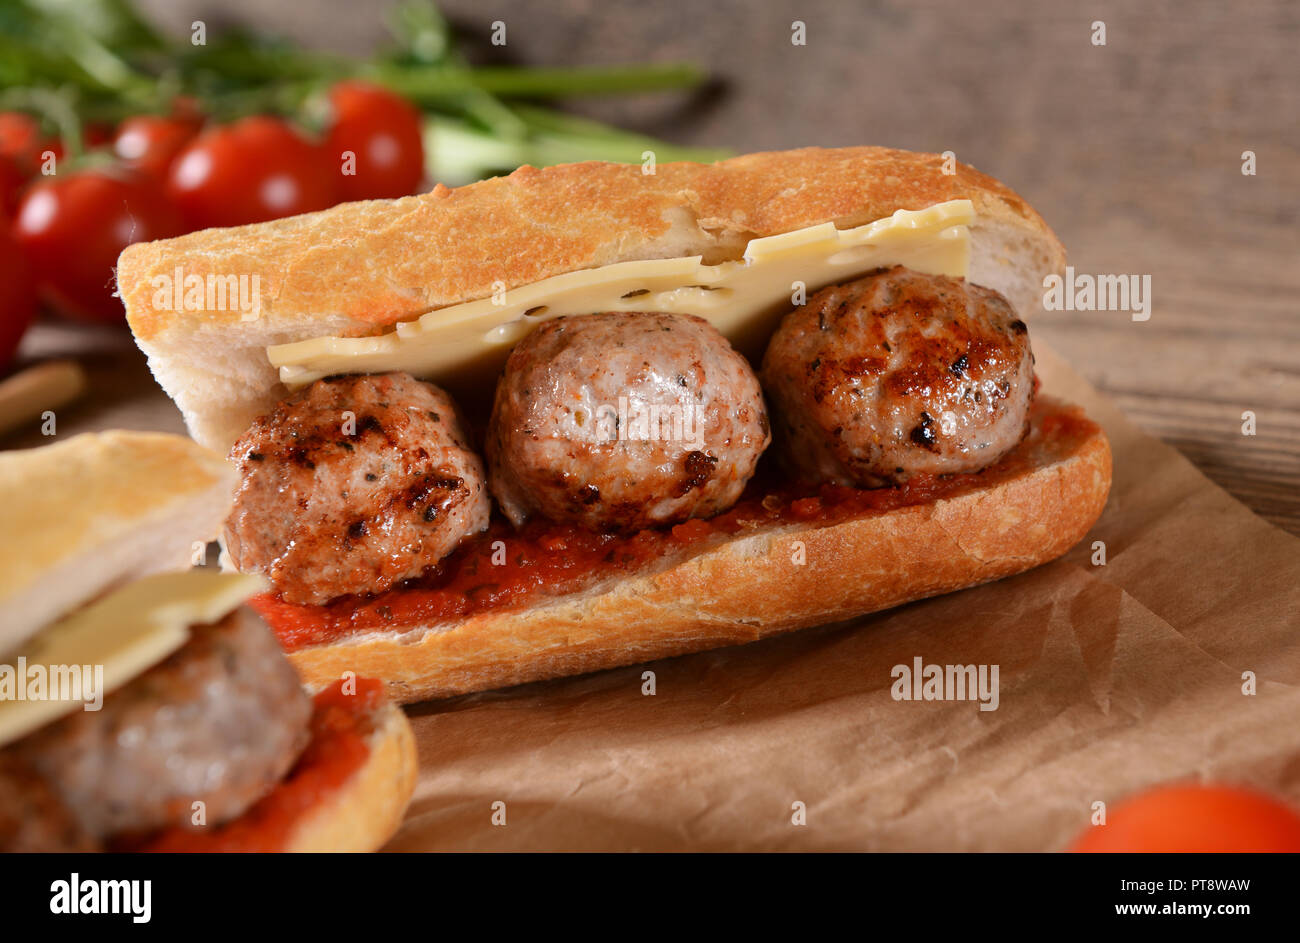 Sandwich with meat balls, cheese and sauce Stock Photo